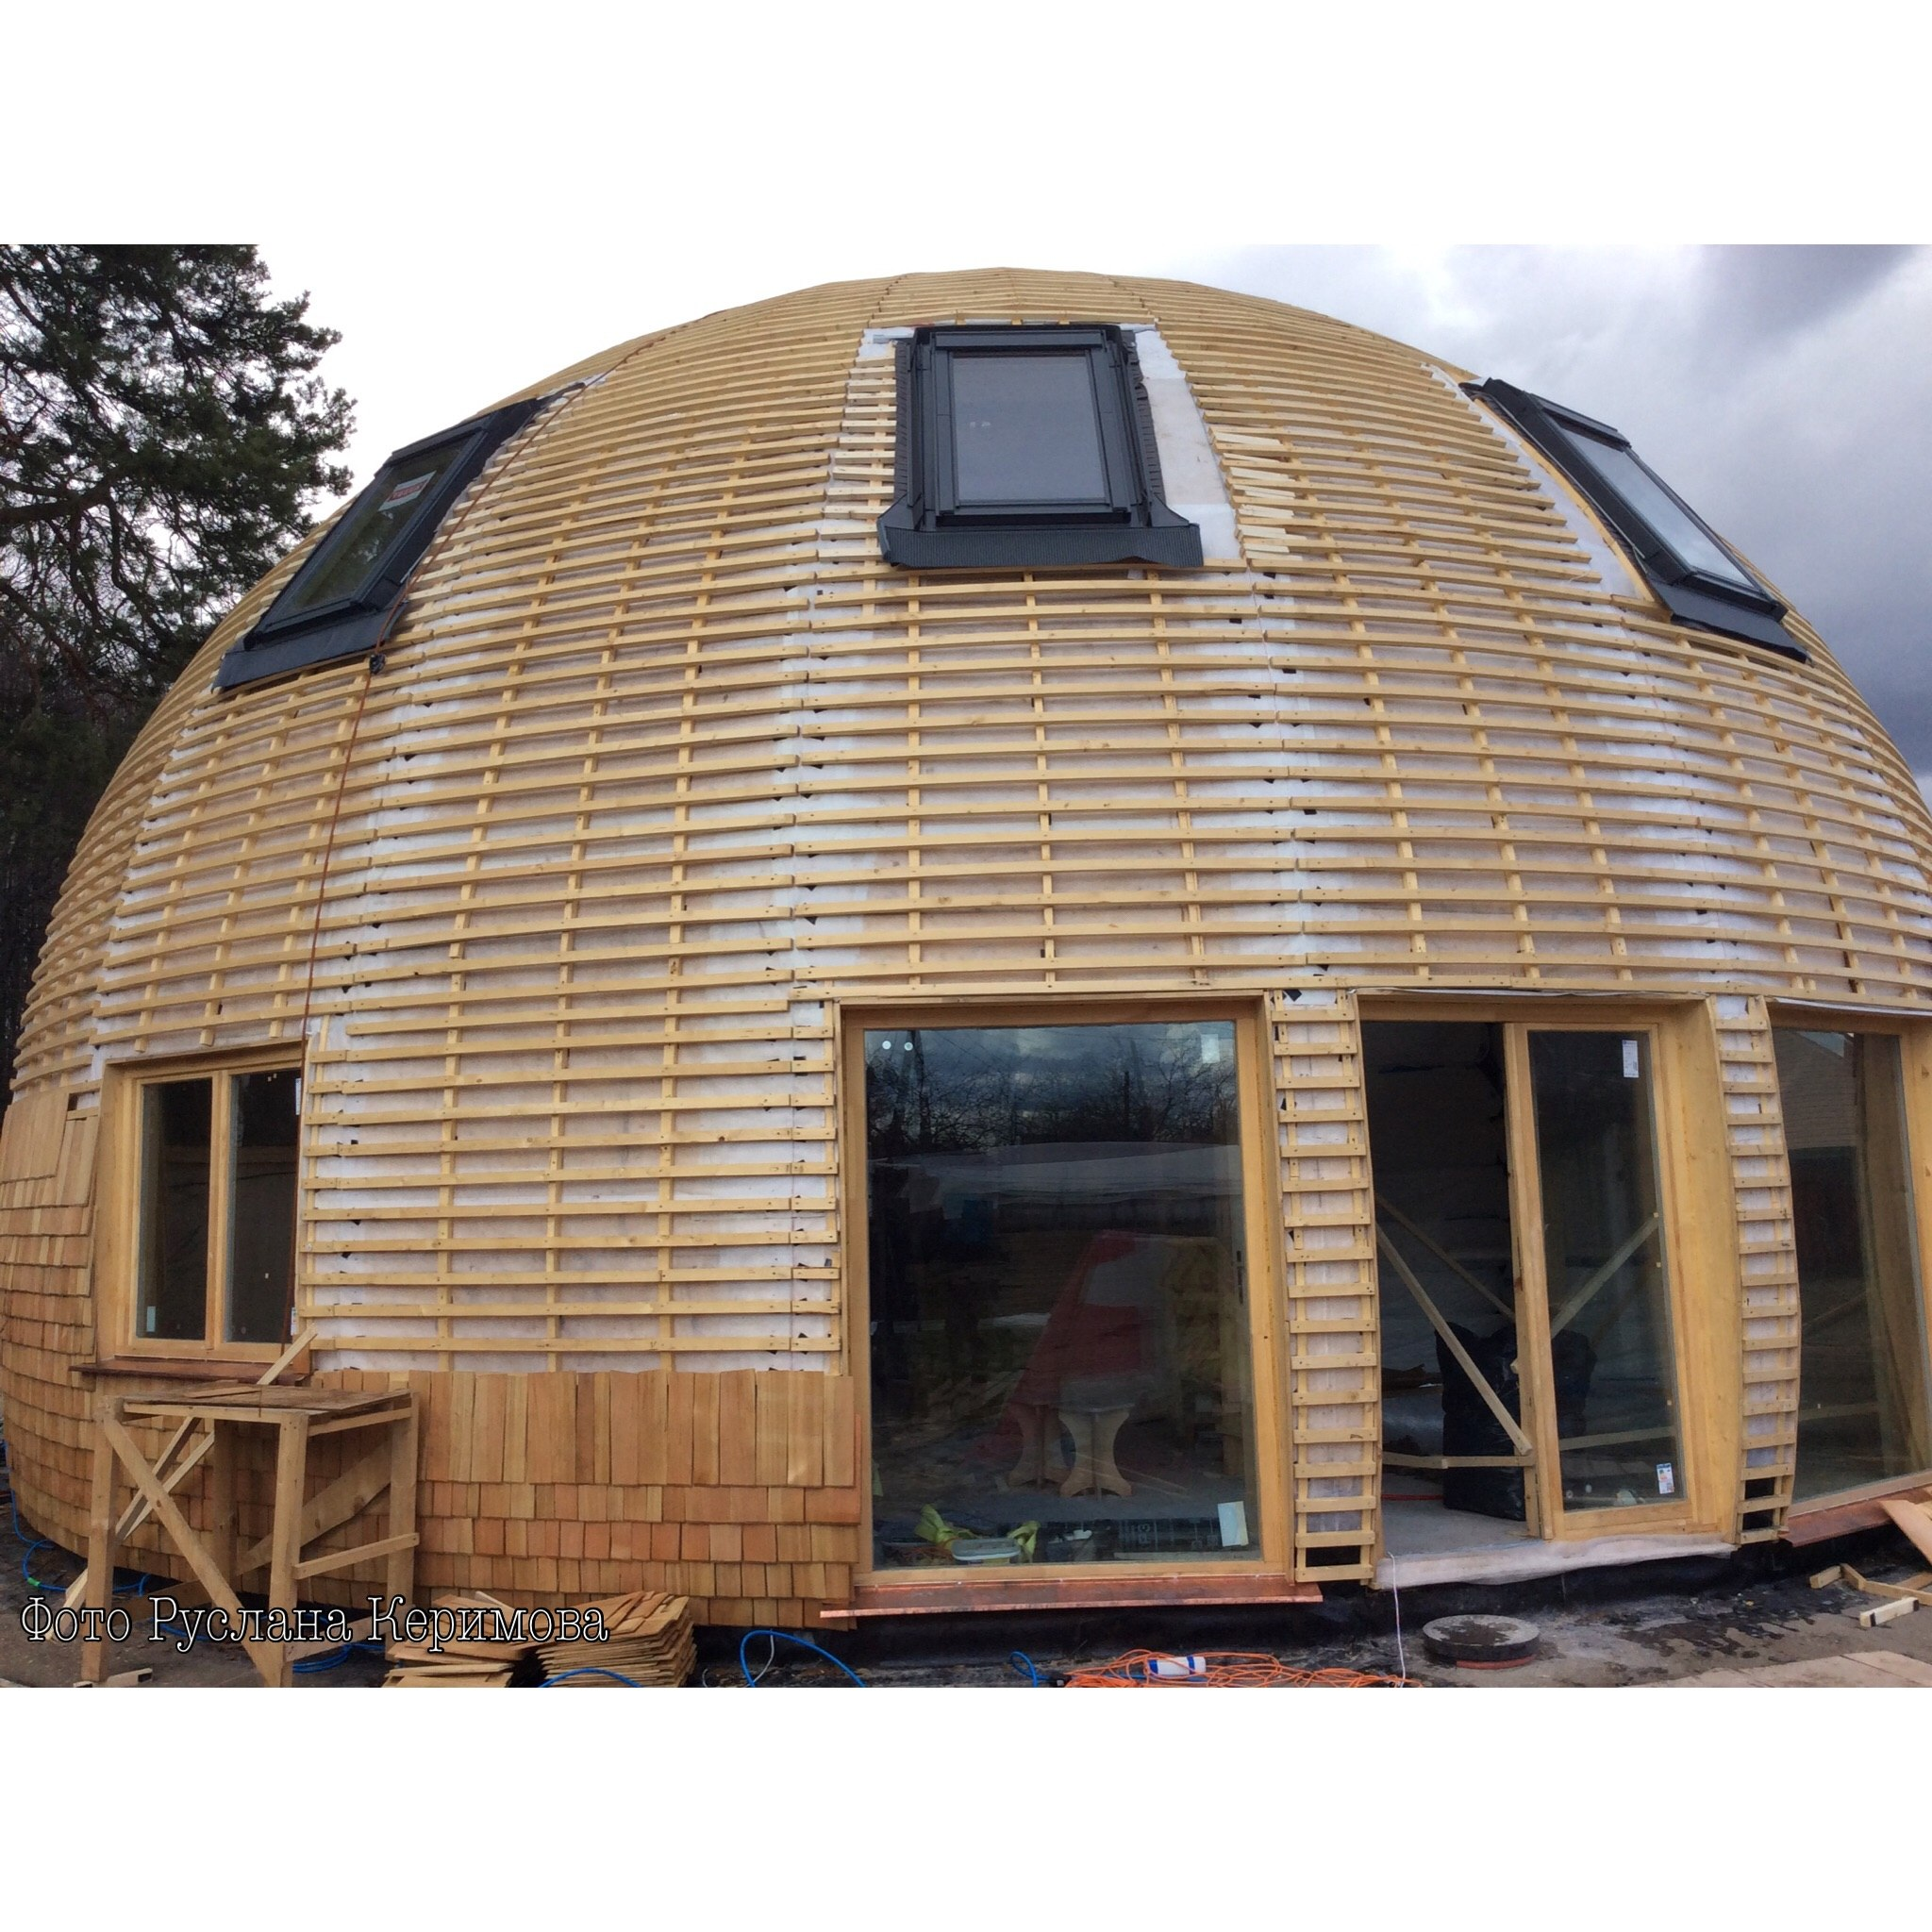 Round Dome Homes: 1000+ Ideas About Dome House On Pinterest